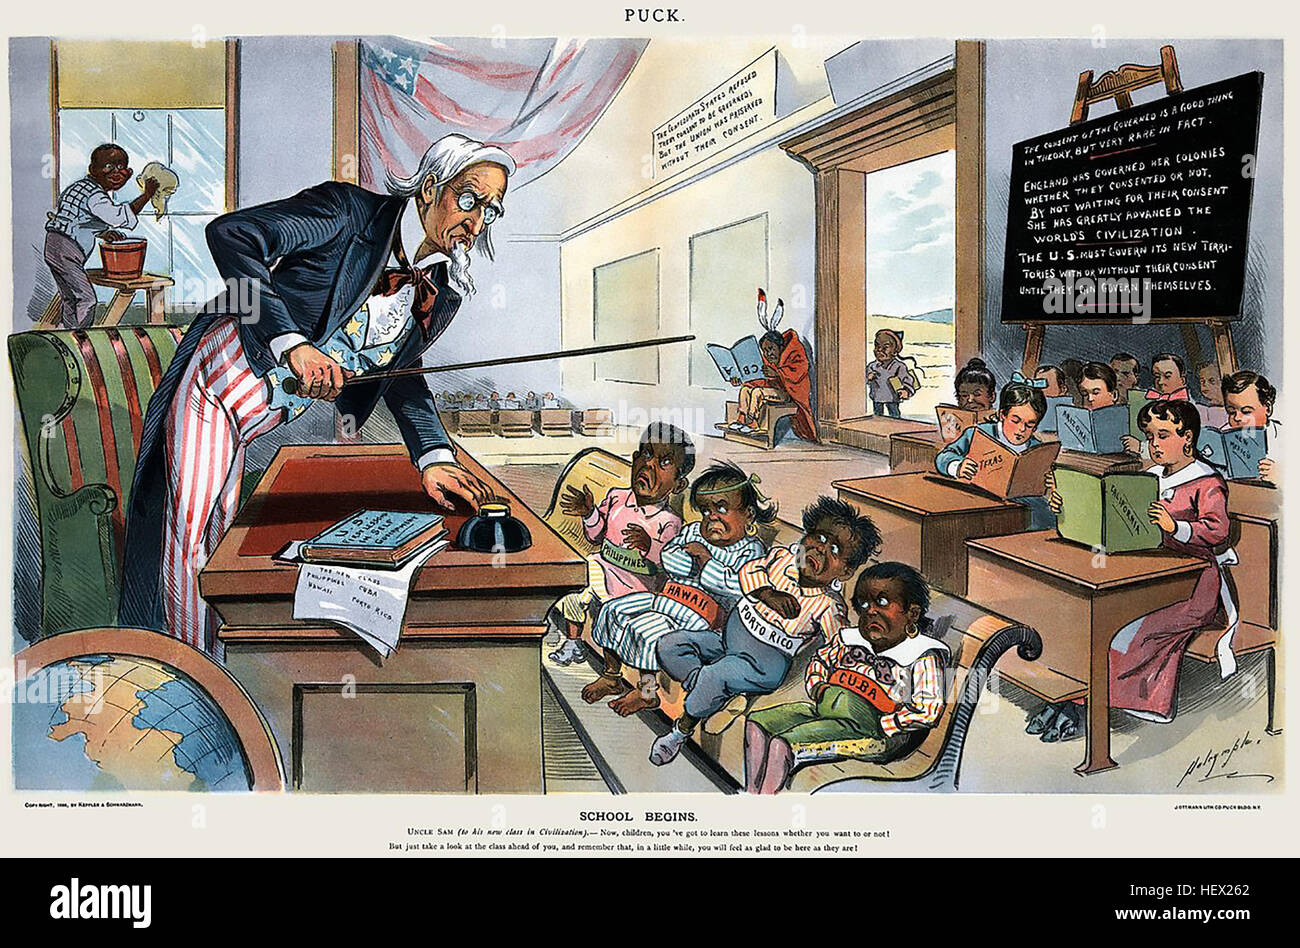 SCHOOL BEGINS Cartoon from American satirical magazine Puck on 25 January 1899 showing Uncle Sam teaching the newly - Stock Image